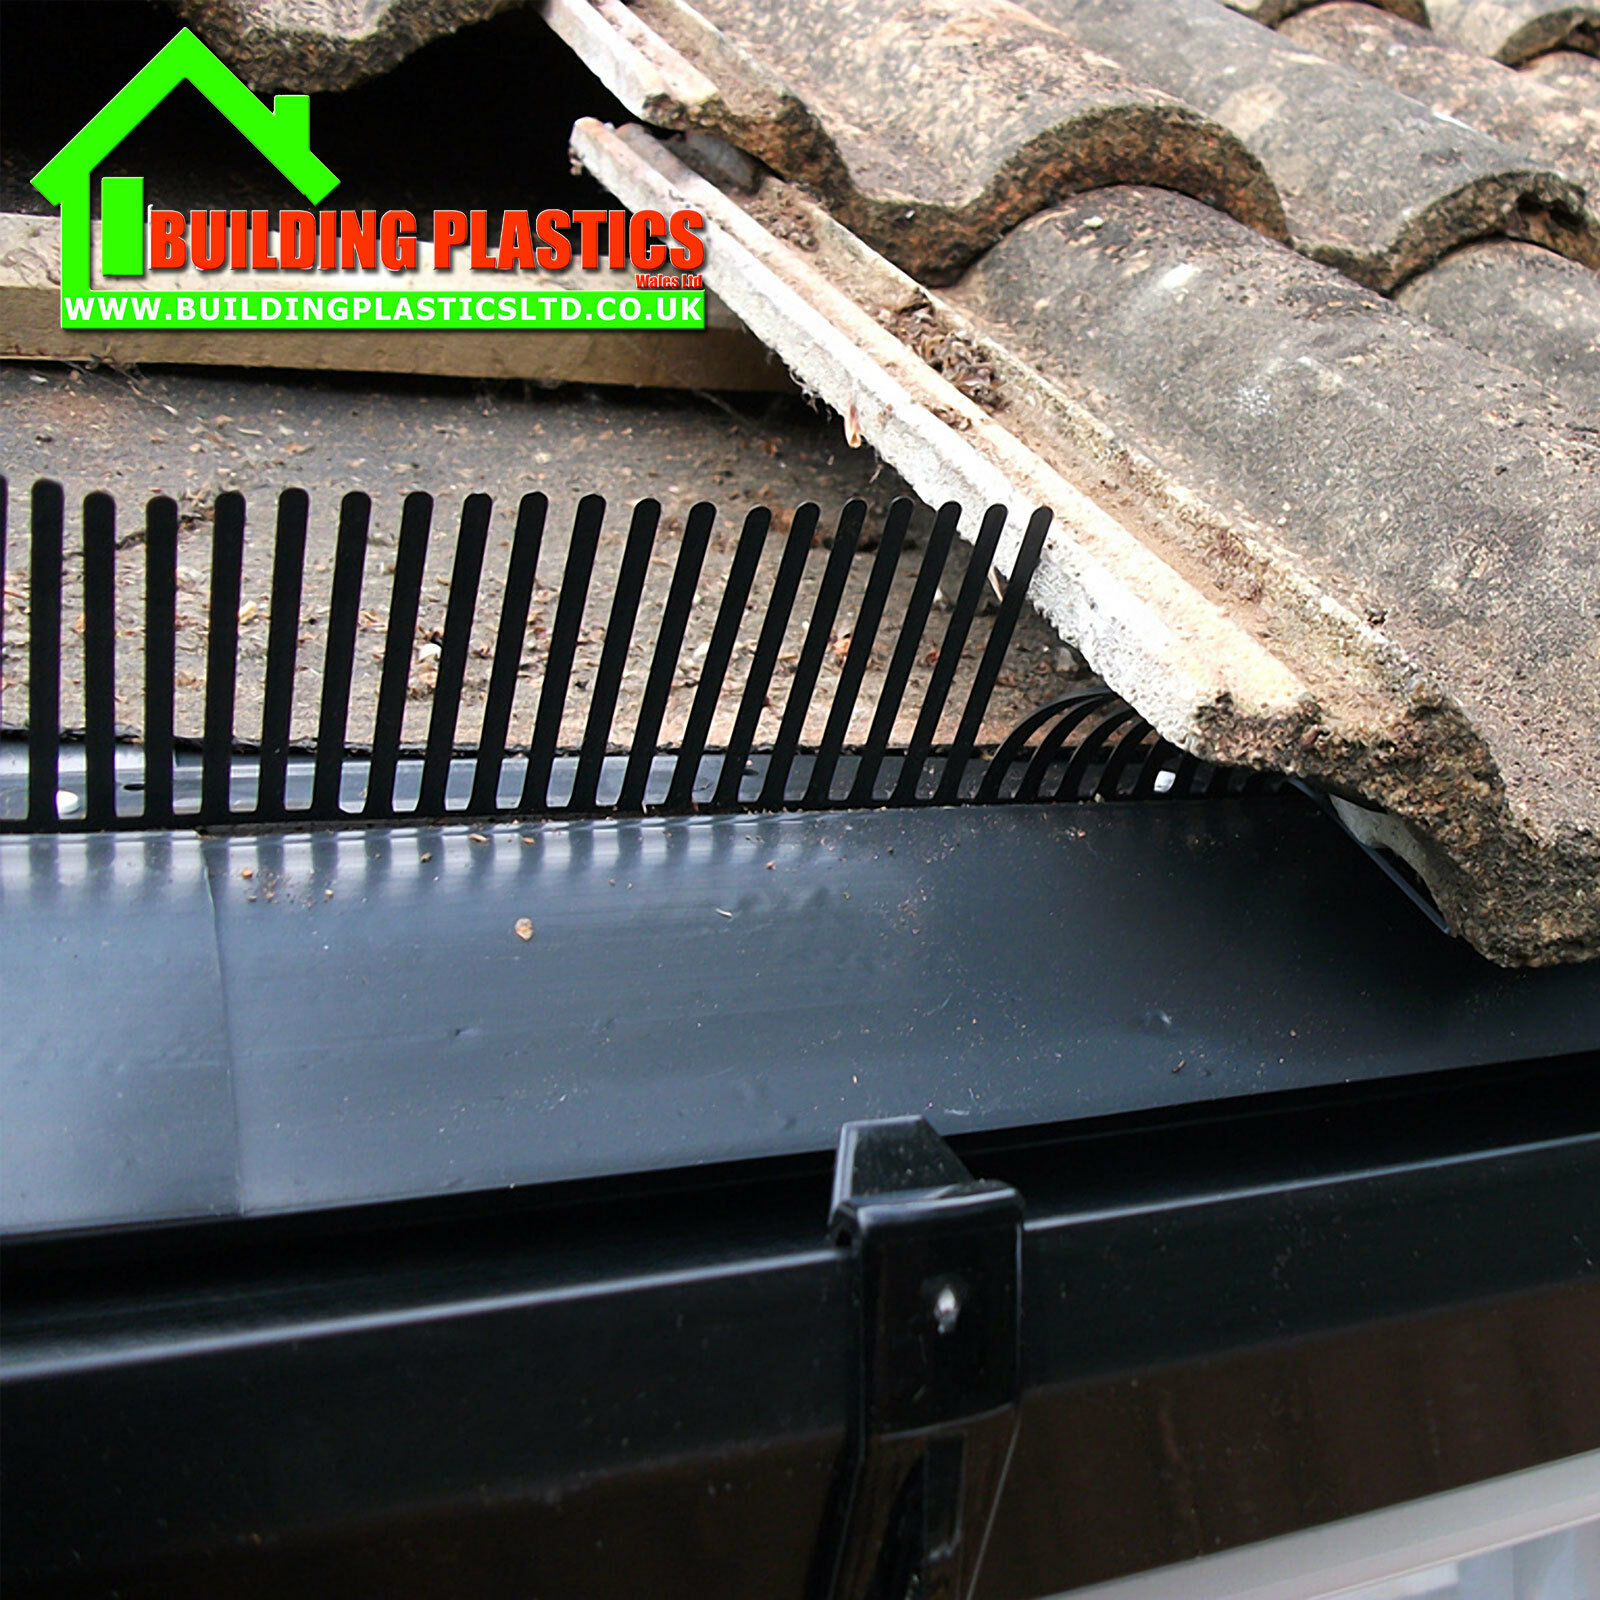 Bird Protection Comb For Eaves Roof Tle Gap Fill Roof